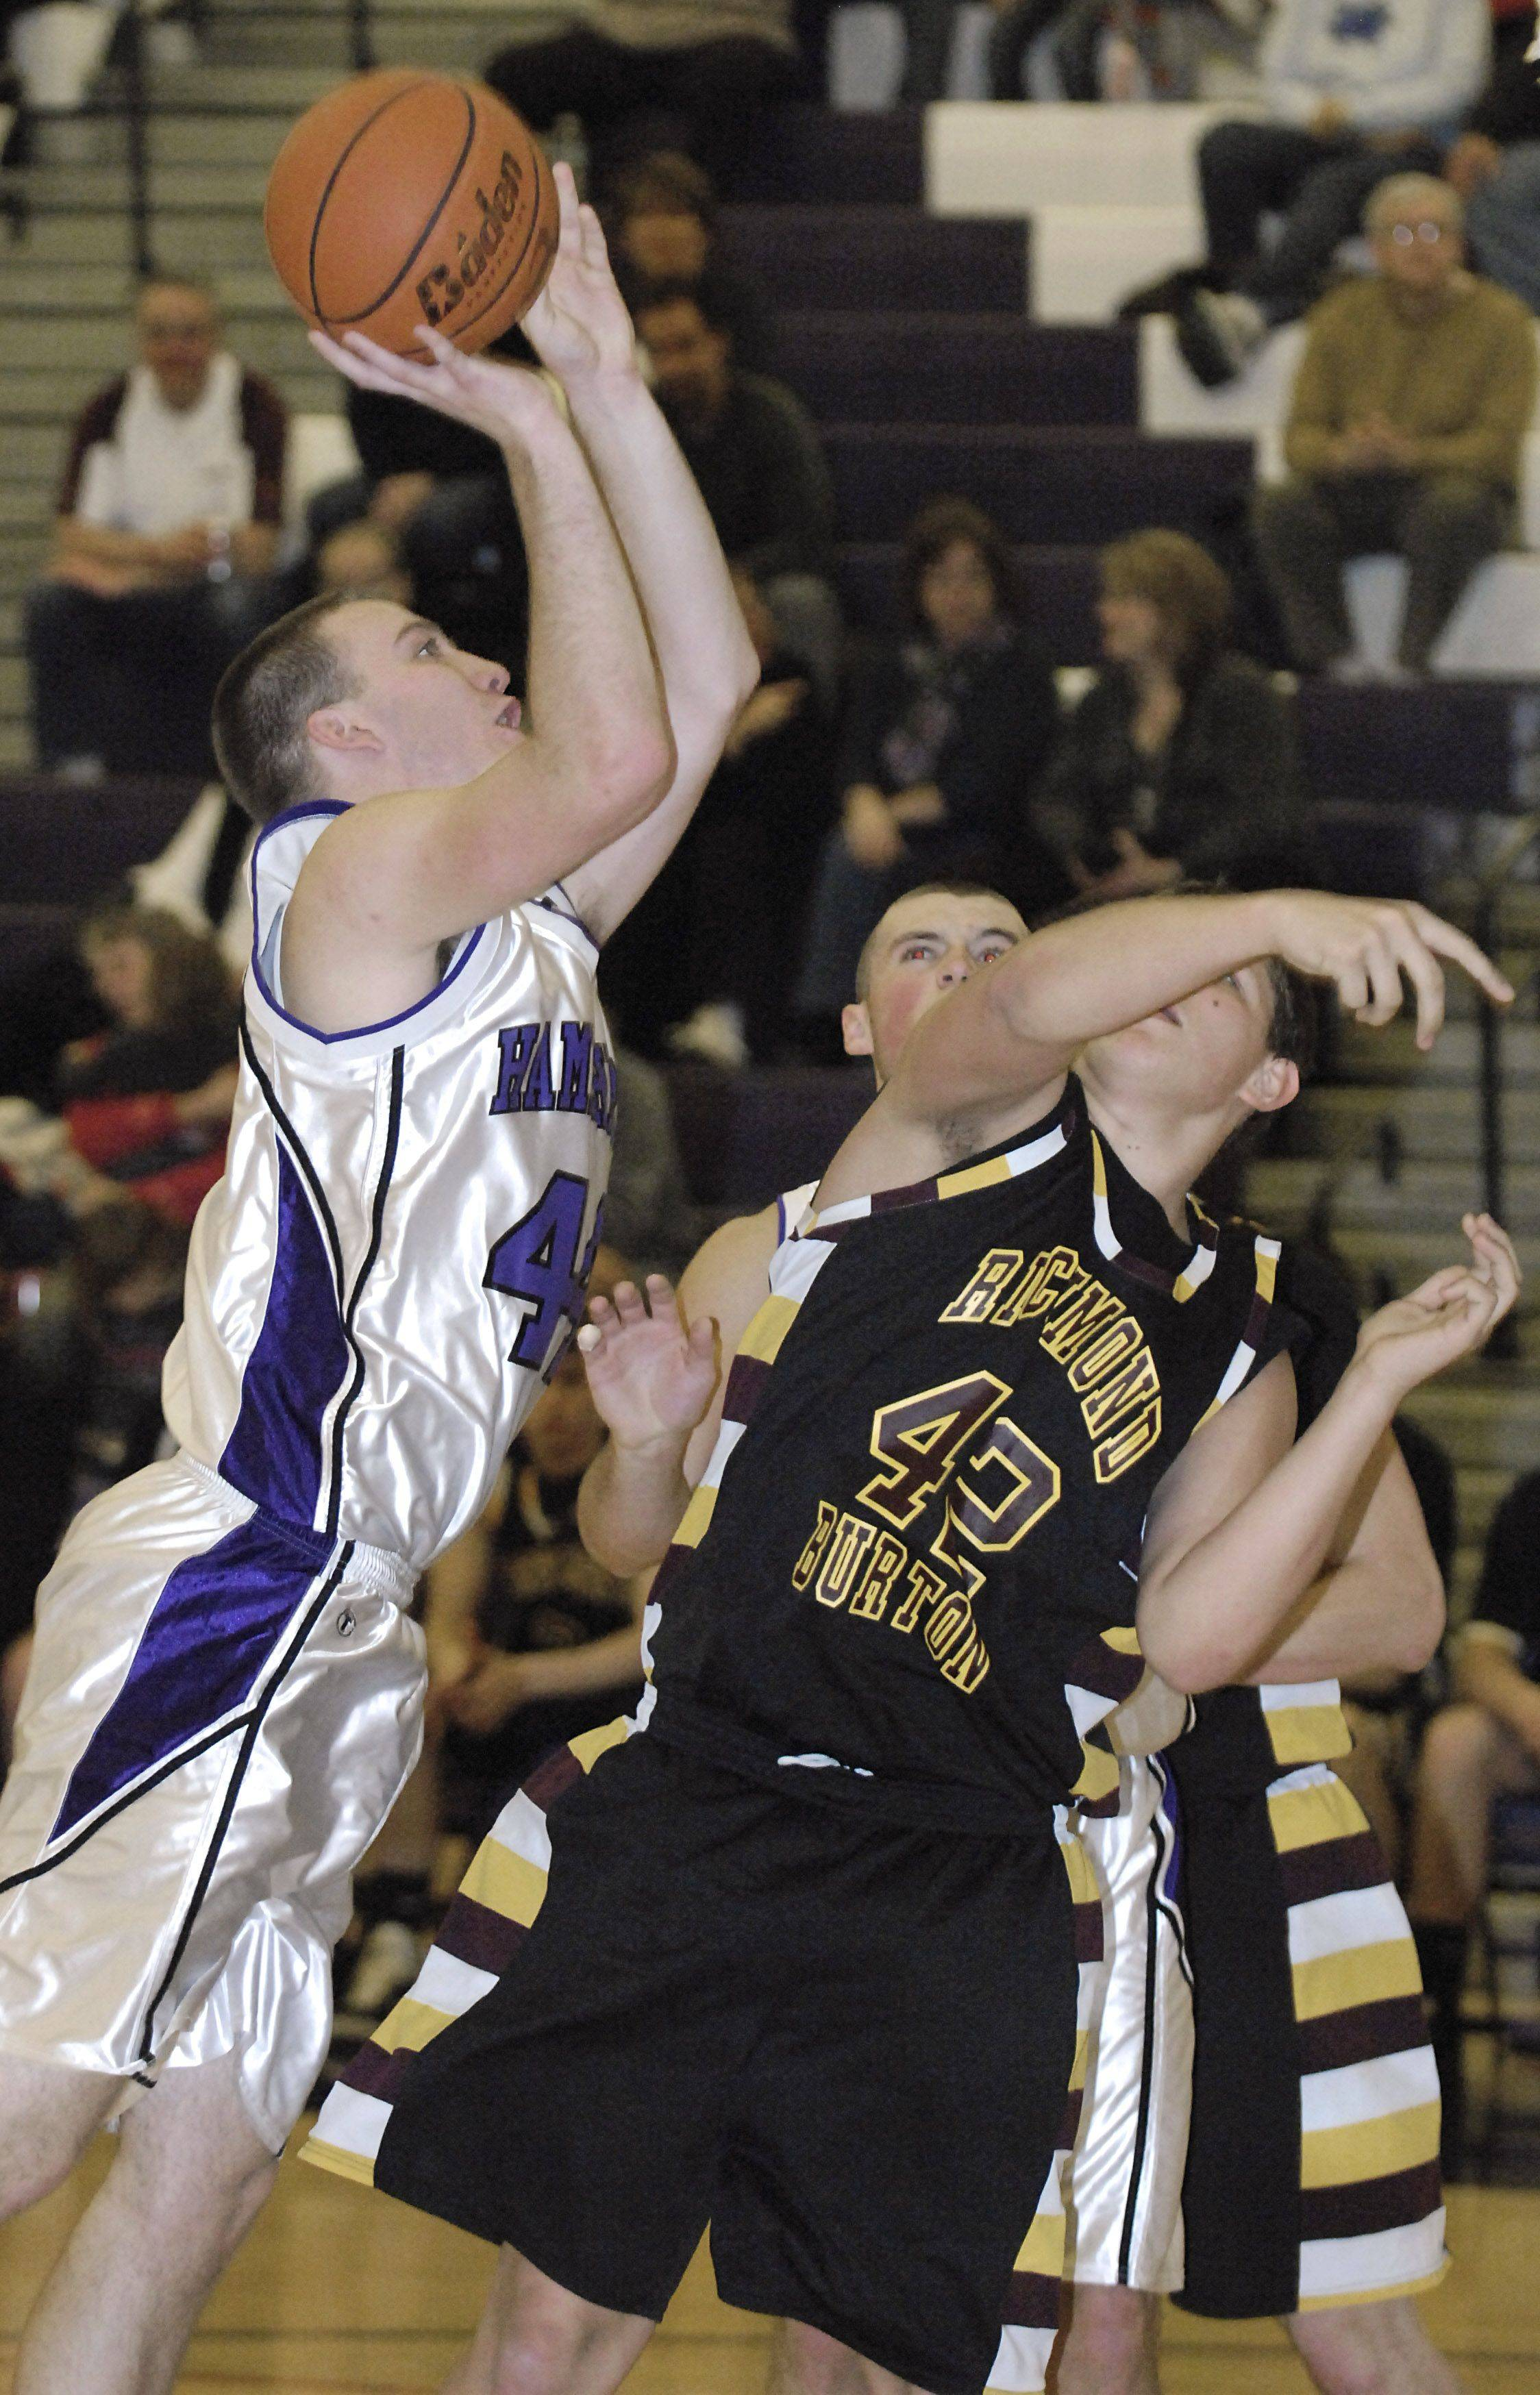 Hampshire's Tyler Watzlawick shoots over Richmond's Zach Rygiel in the second quarter on Saturday at Hampshire.